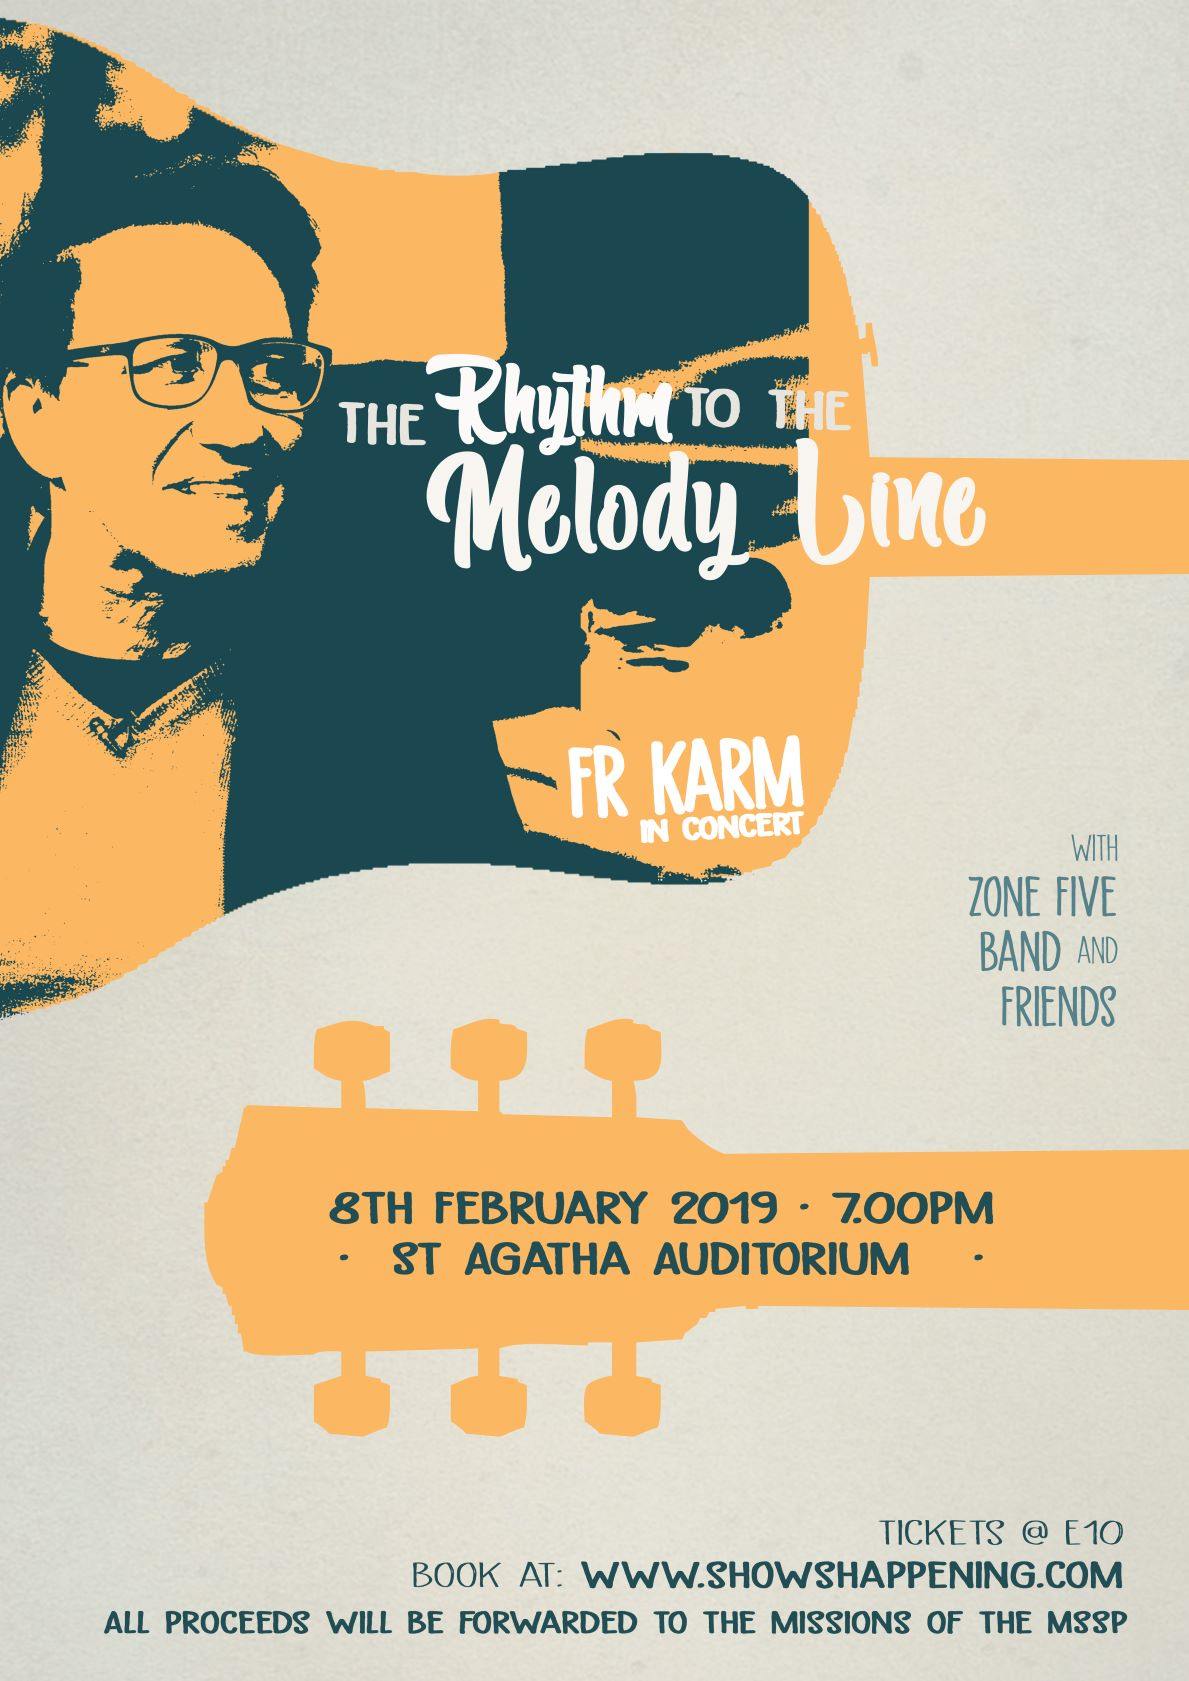 Fr Karm in Concert - The Rhythm to the Melody Line flyer